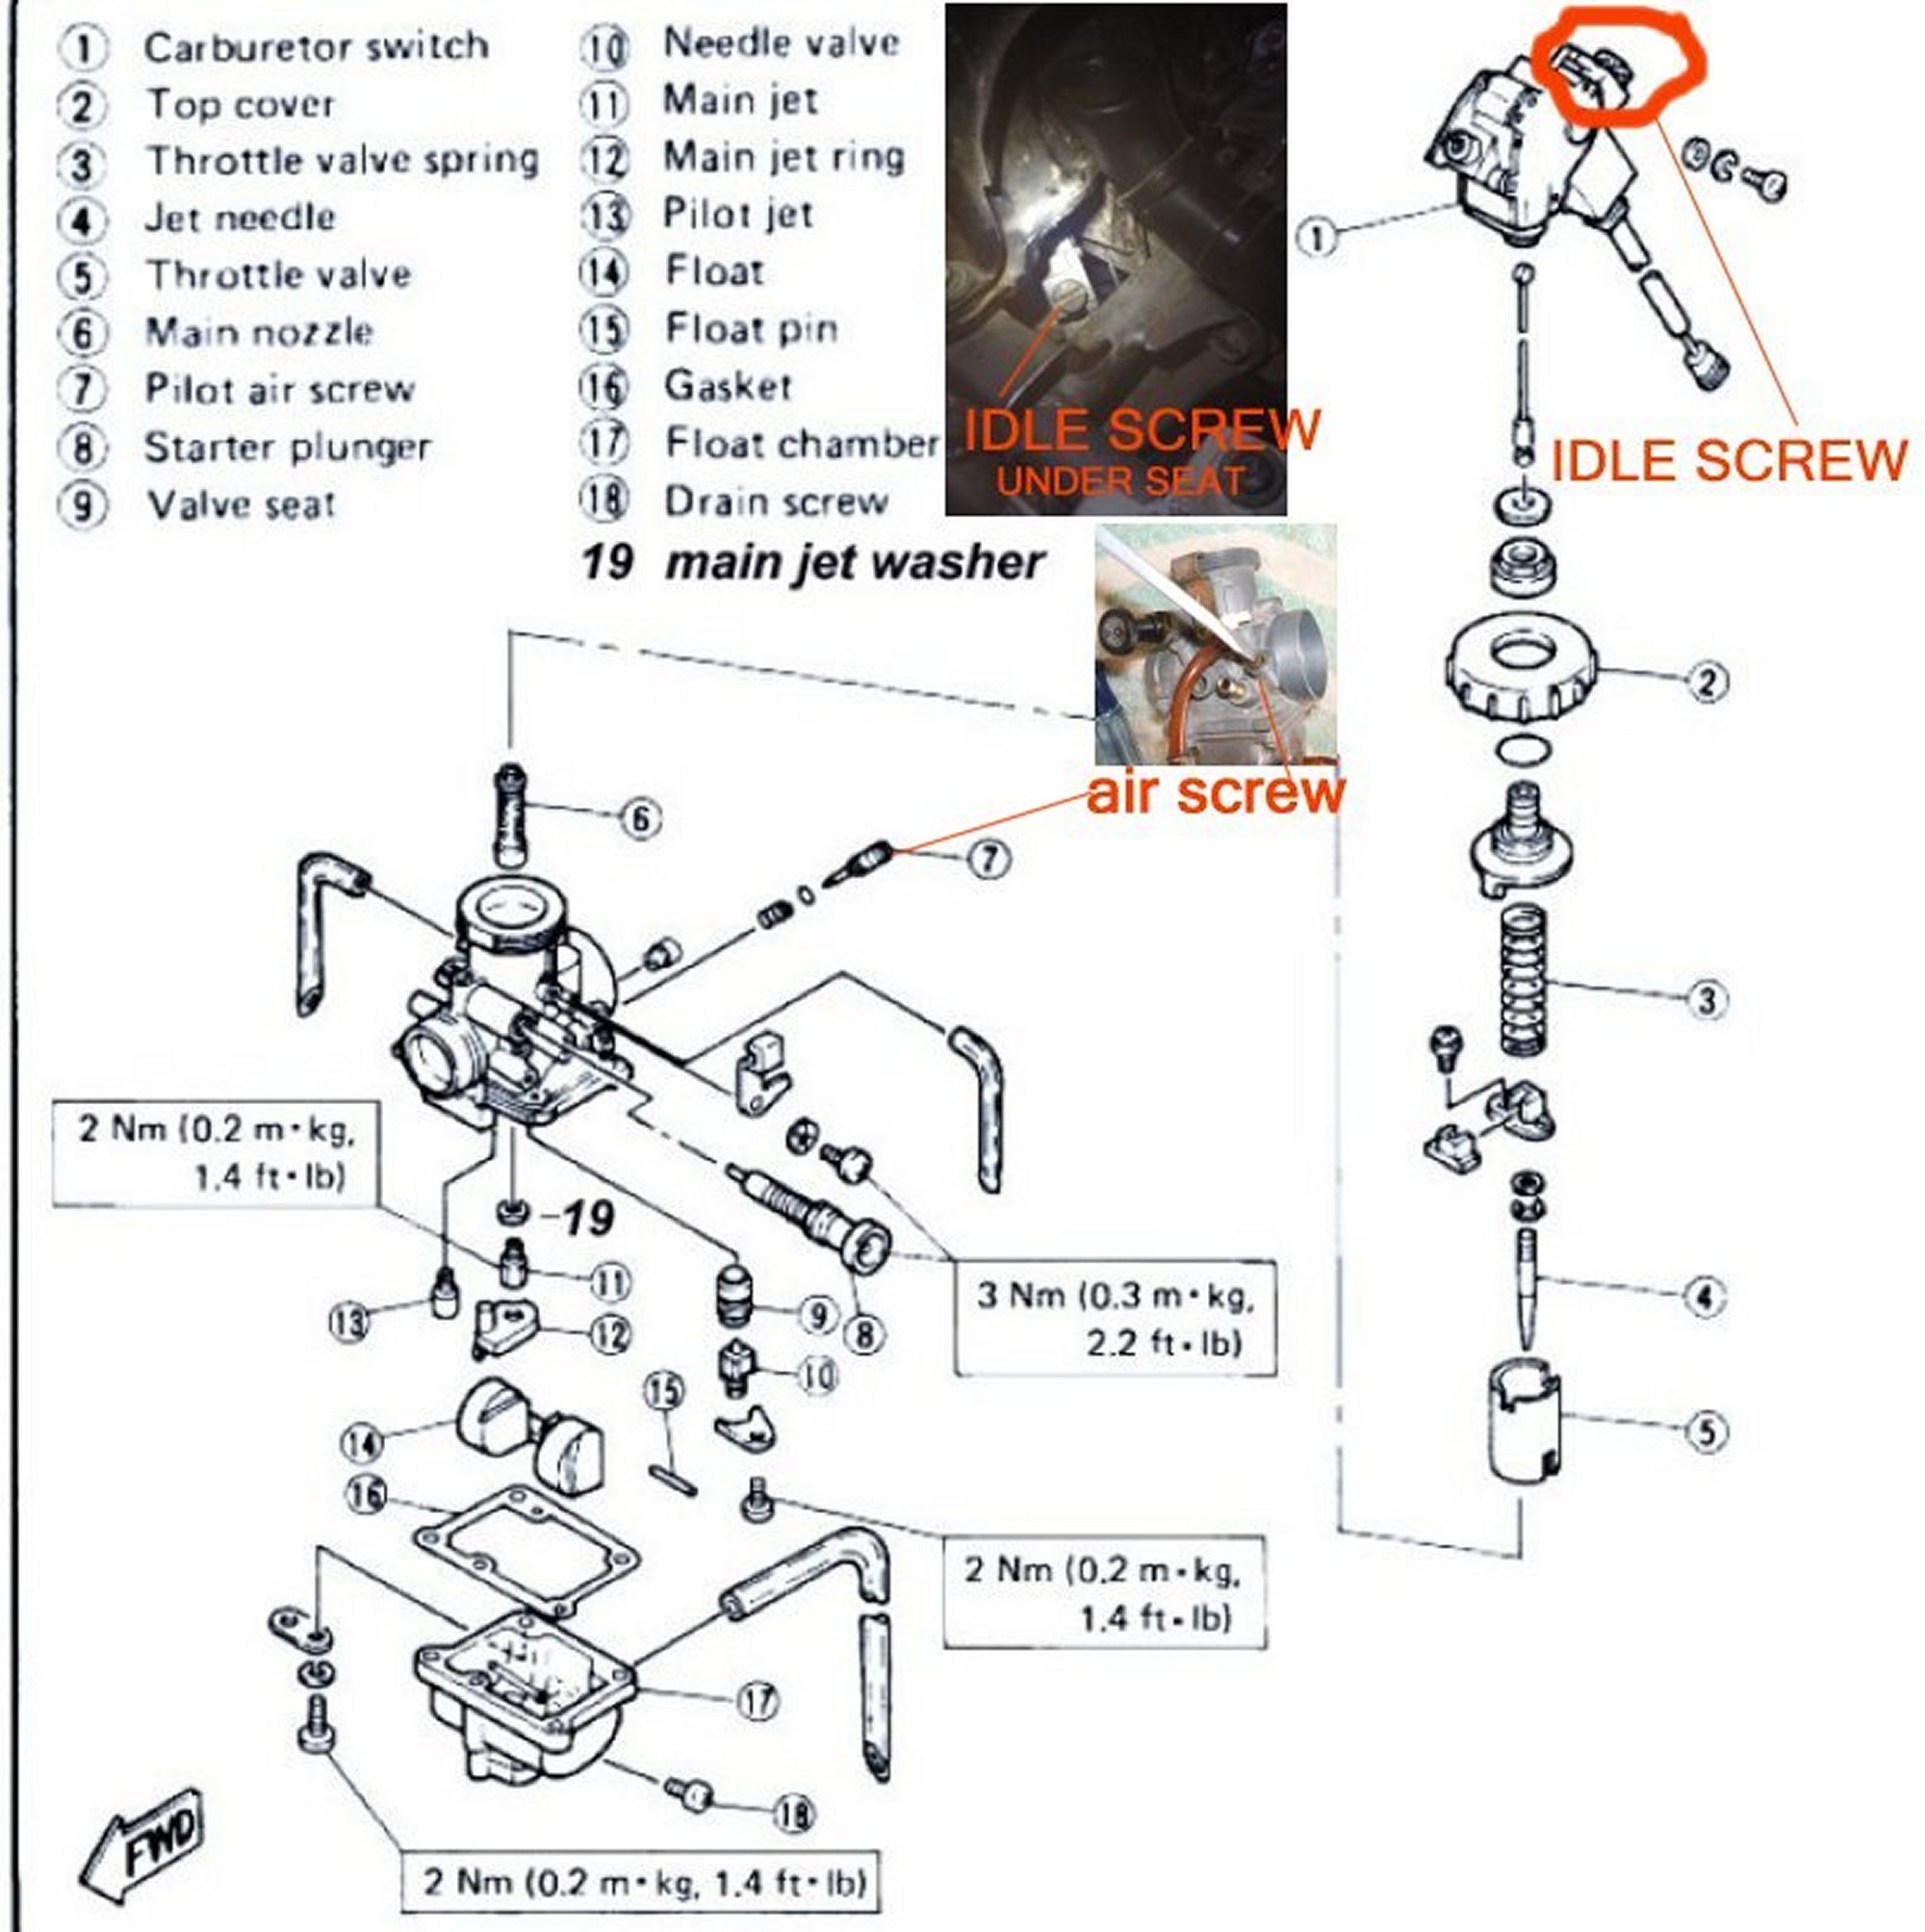 hw_0352] yamaha blaster wire diagram download diagram  pimpaps shopa mohammedshrine librar wiring 101